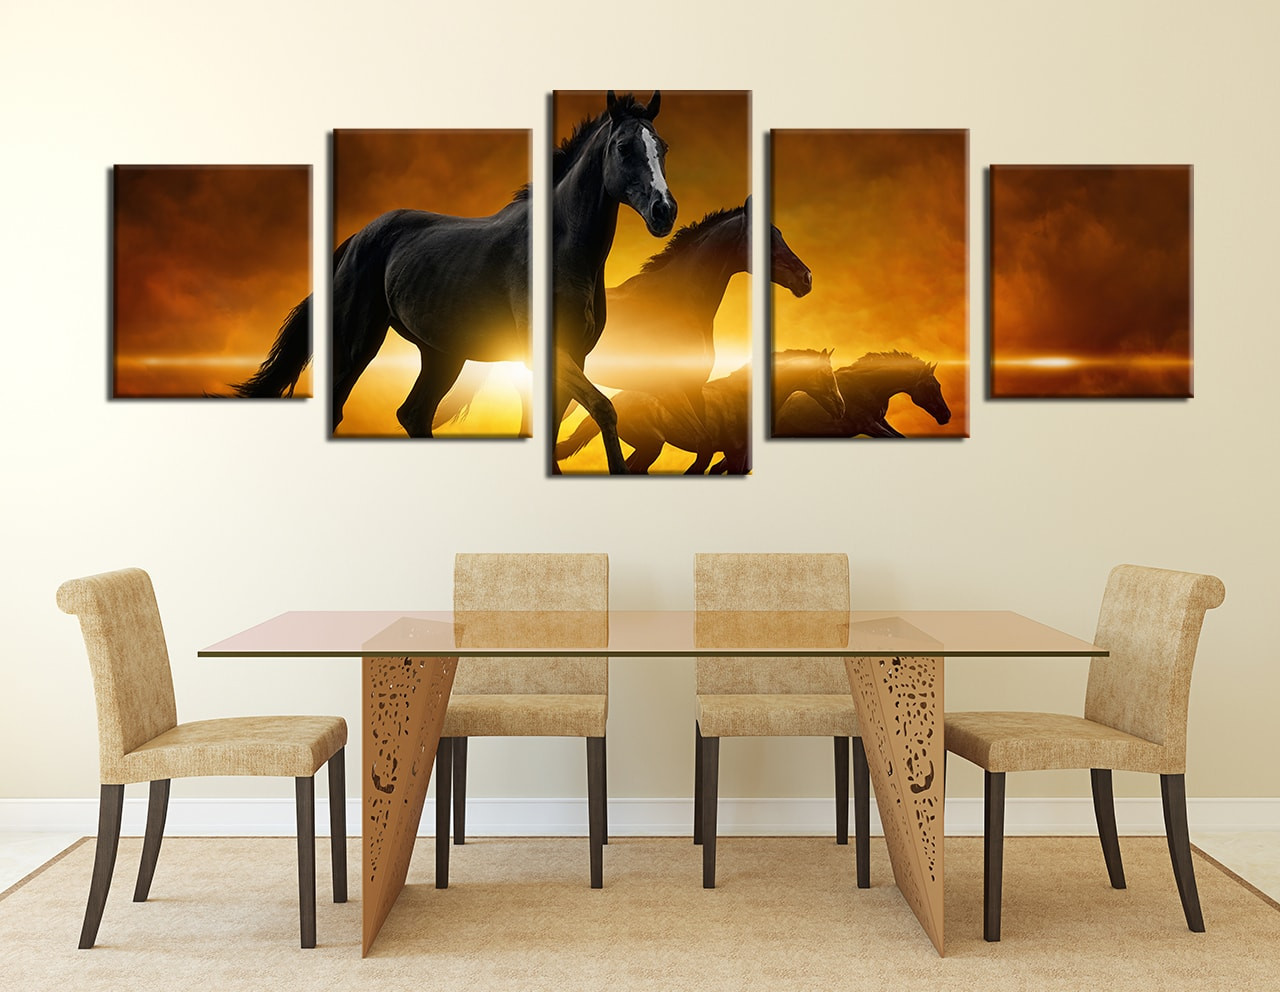 5 piece huge canvas print yellow artwork black horse multi panel dining room wall decor 5 piece wall art wild multi panel art horse amipublicfo Image collections